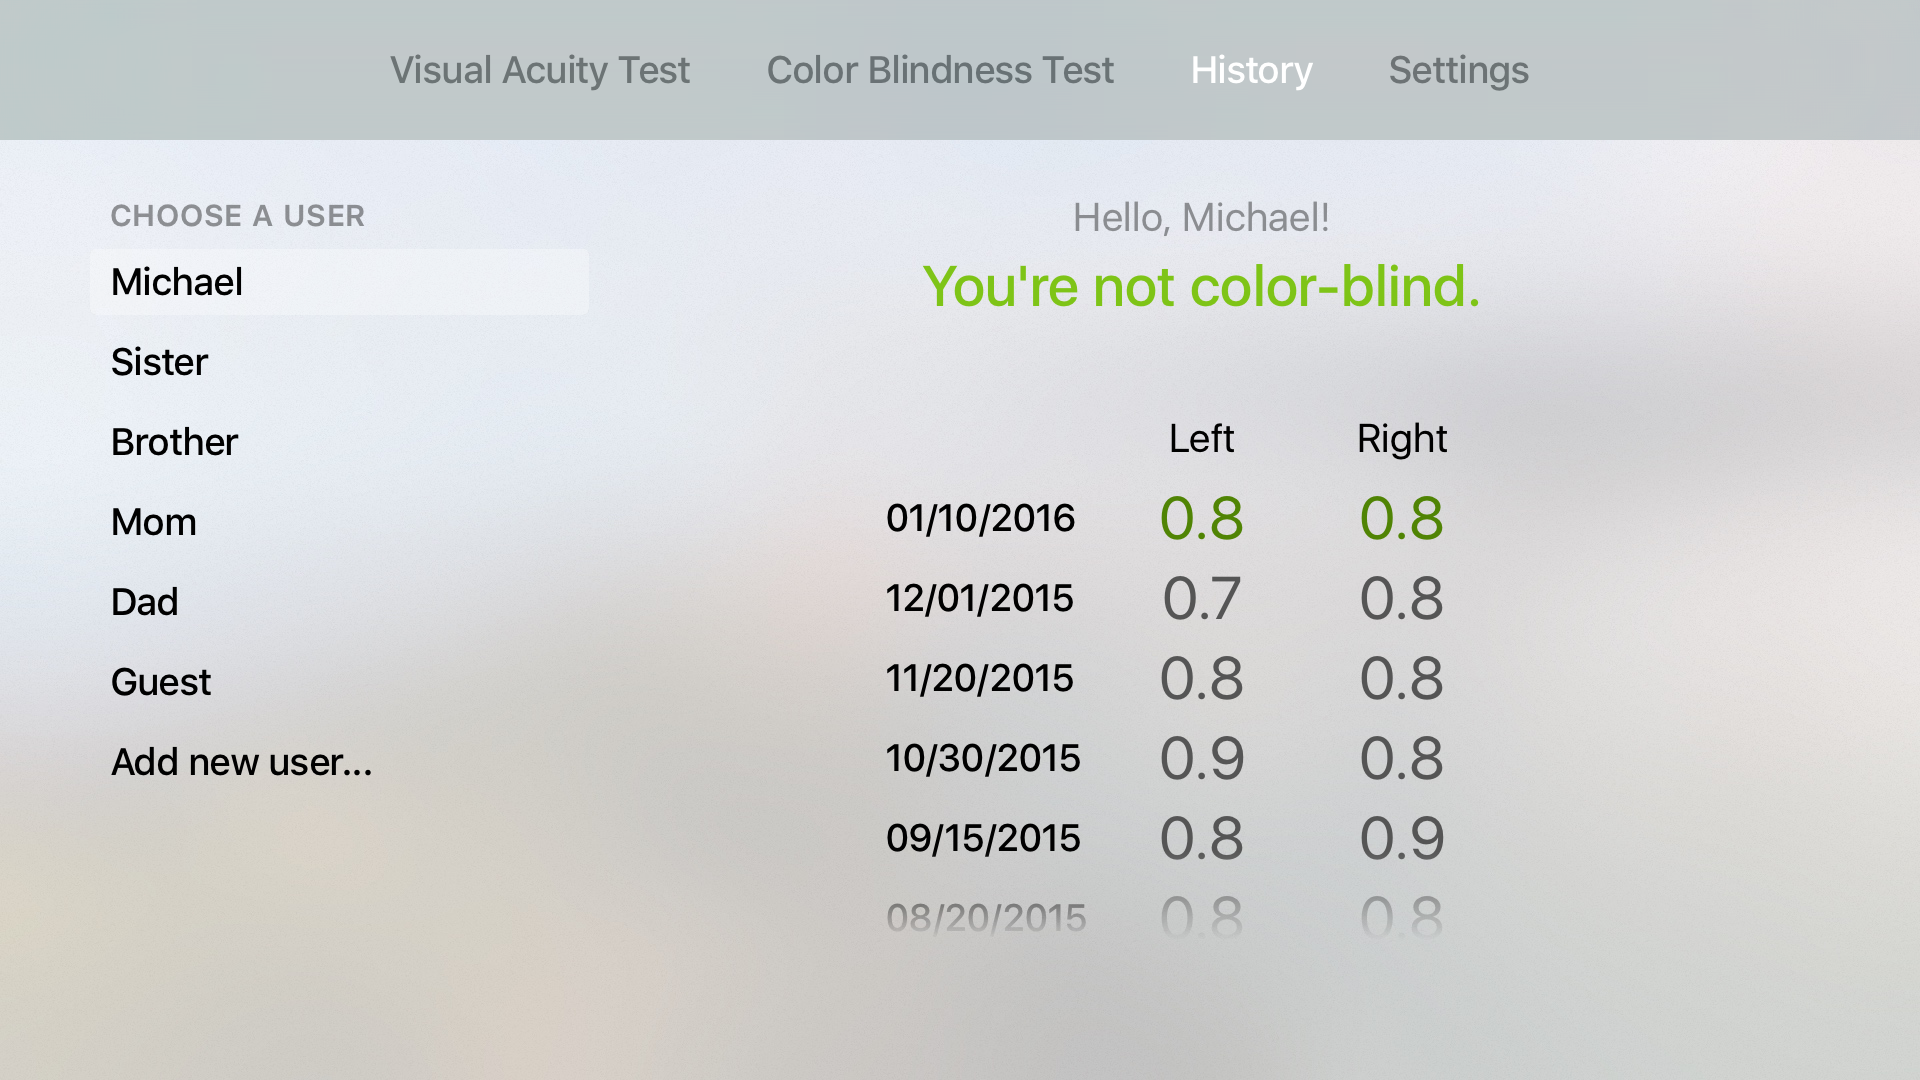 EyeKeeper - Visual Acuity Test, Color Blindness Test and Multi-Users History Tracker screenshot 4